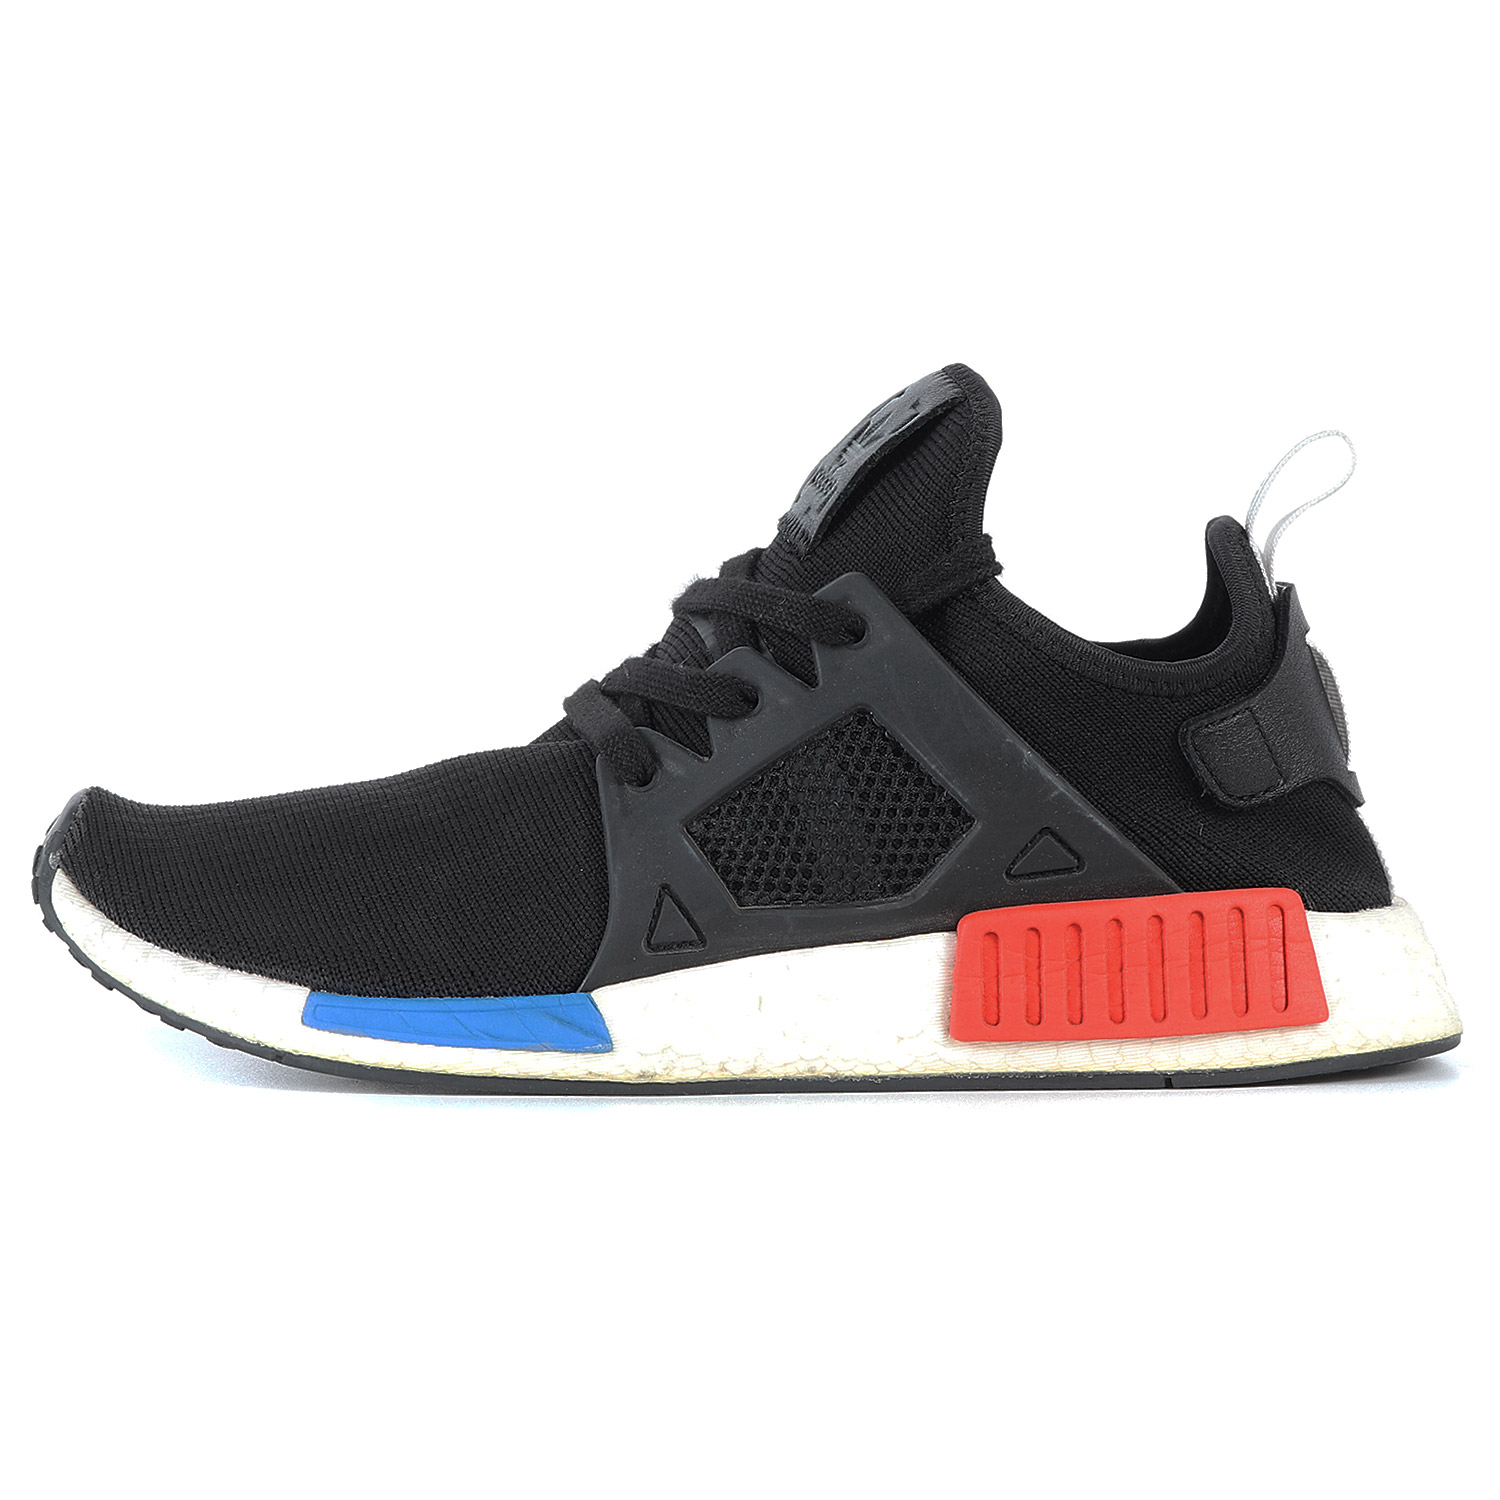 17SS NMD_XR1 PK (BY1909)